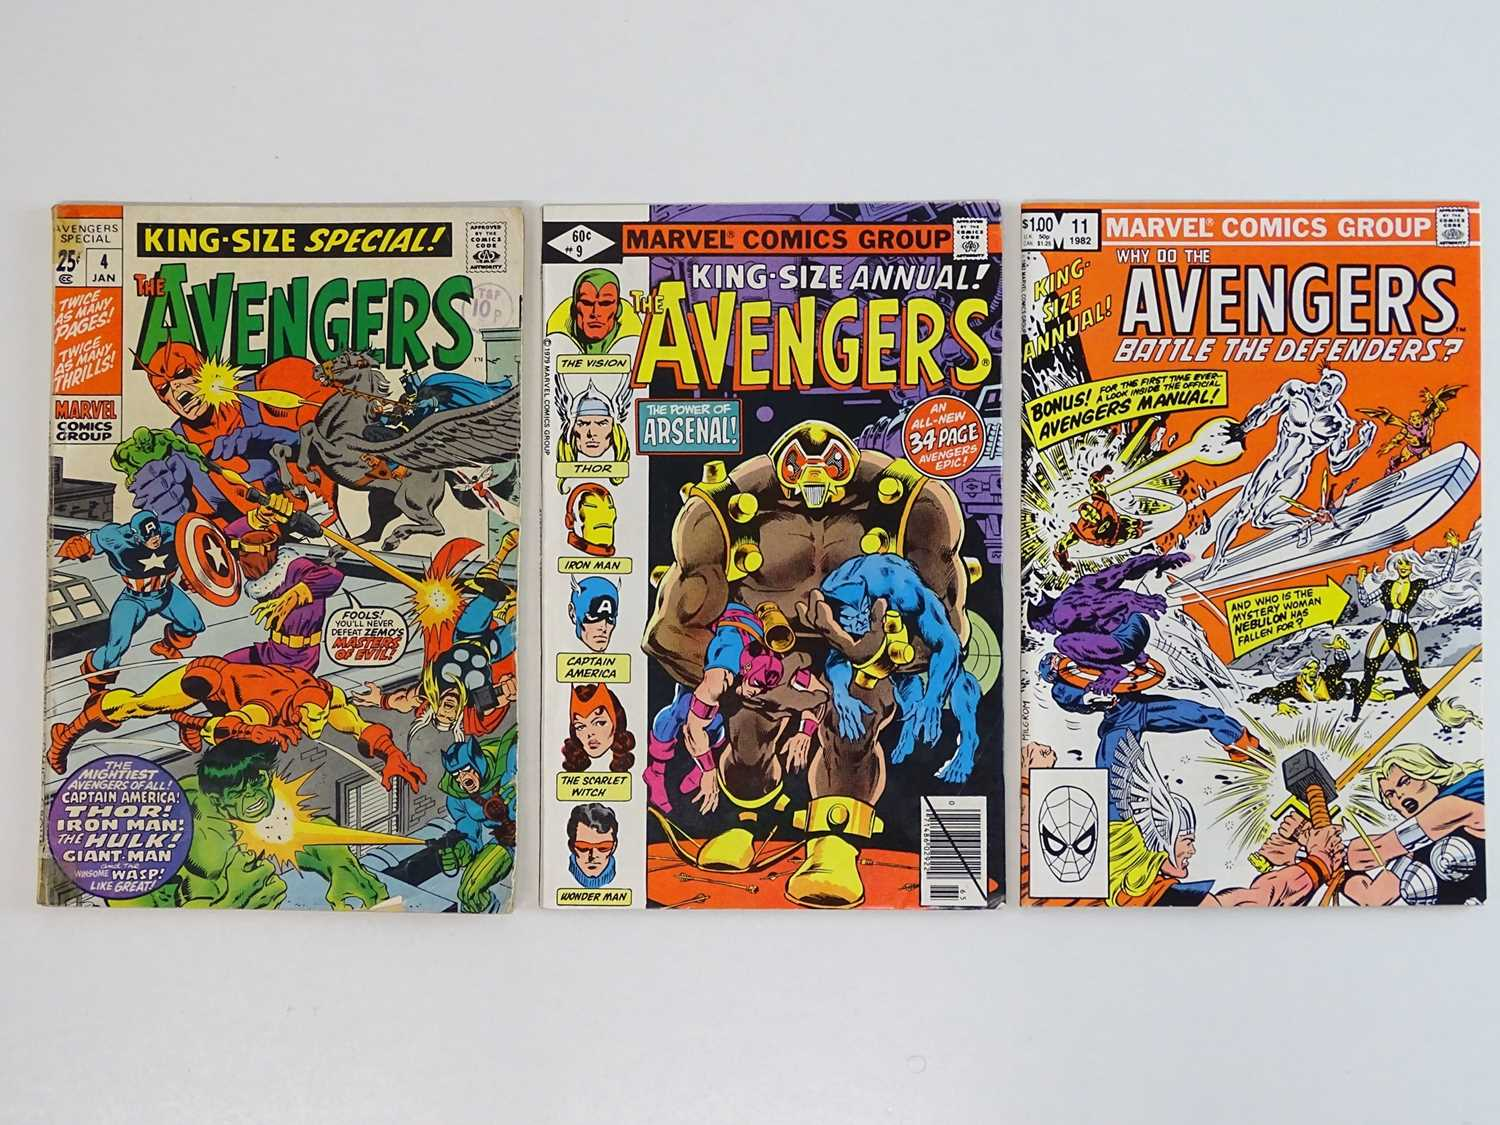 AVENGERS KING-SIZE ANNUALS #4, 9, 11 - (3 in Lot) - (1971/82 - MARVEL) - Includes First appearance